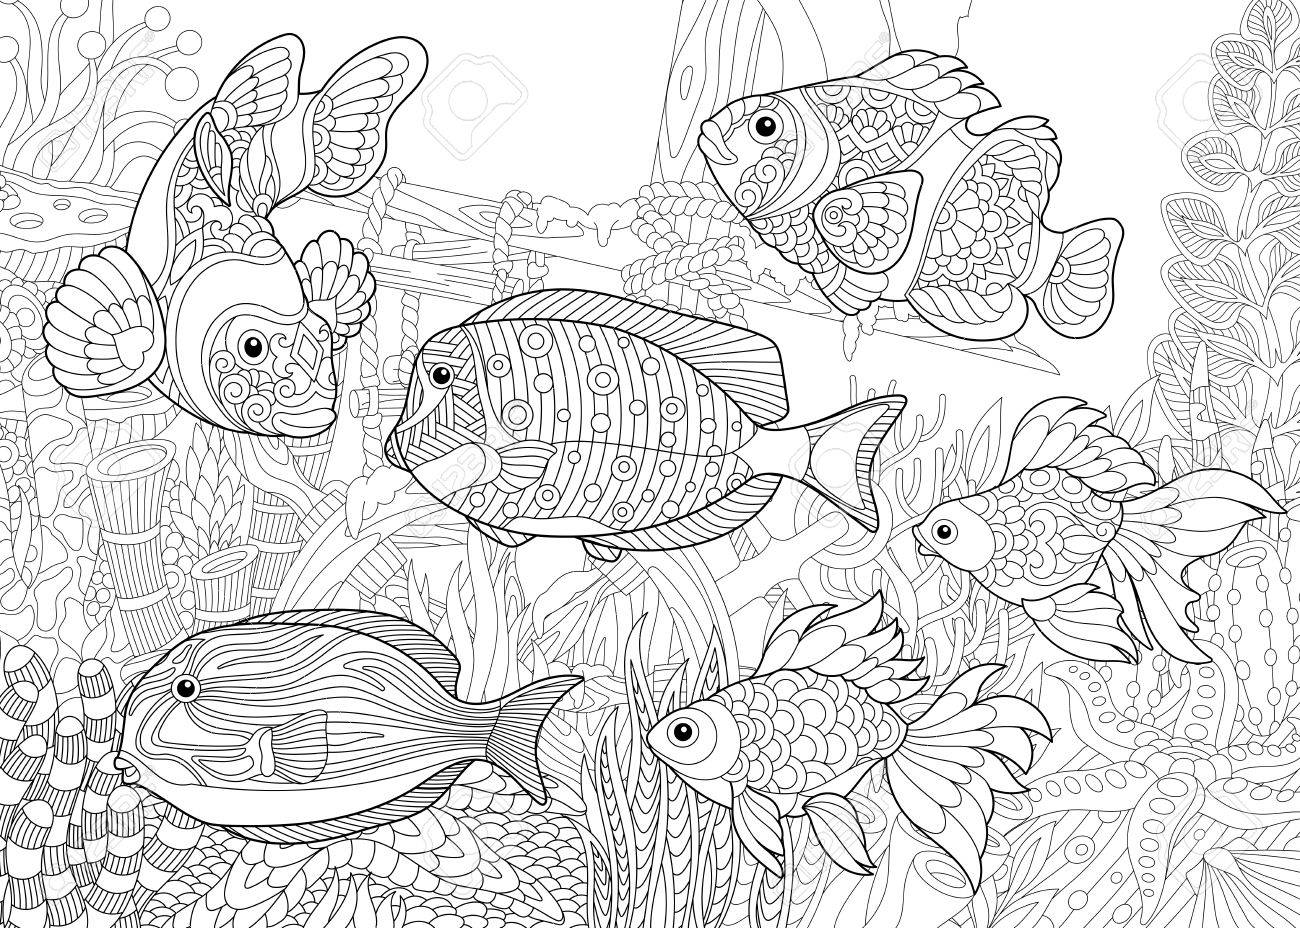 Coloring Page Of Underwater World Royalty Free Cliparts Vectors